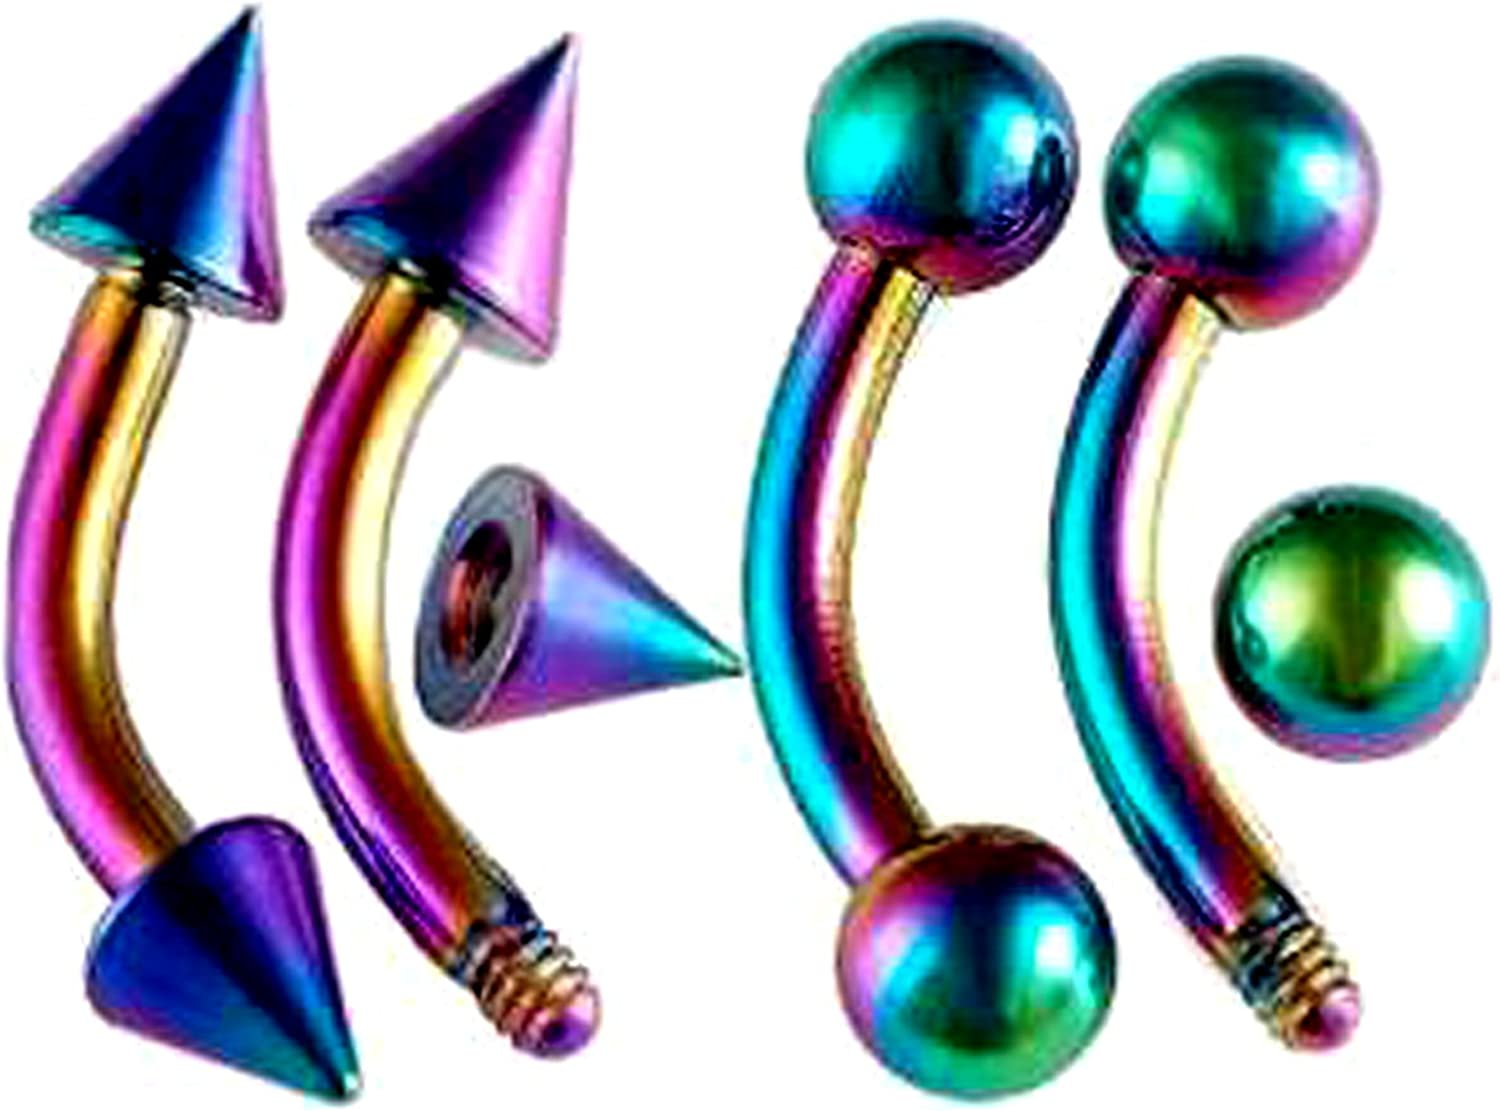 16g 16 gauge 1/4 Inch 6mm Rainbow surgical steel eyebrow lip bars ear tragus rings curved barbell ADKH Piercing 4Pcs